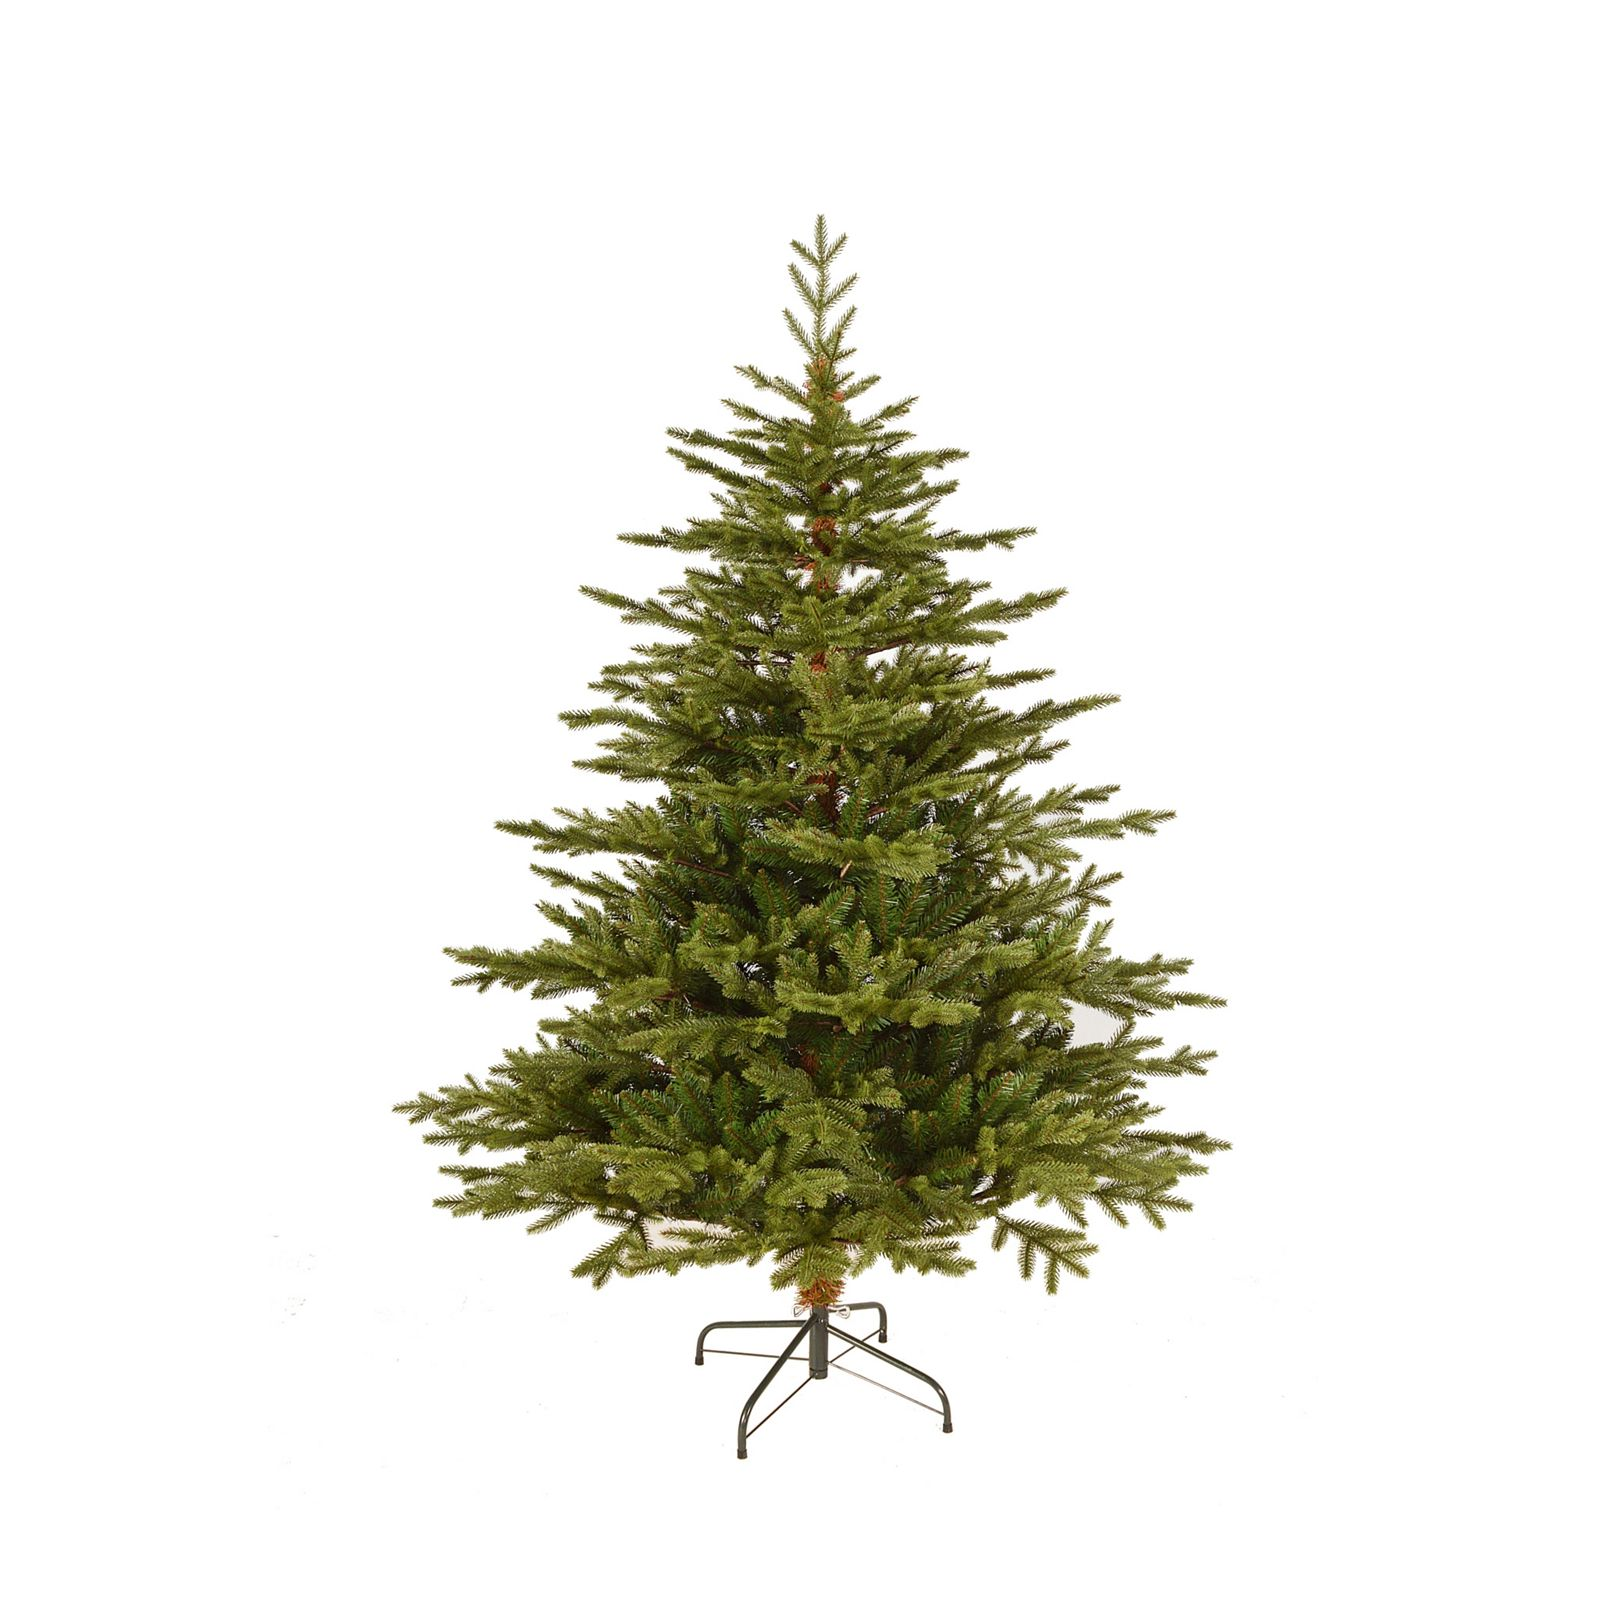 Homebase Artificial Christmas Trees: Cost Of Christmas Challenge With Admiral